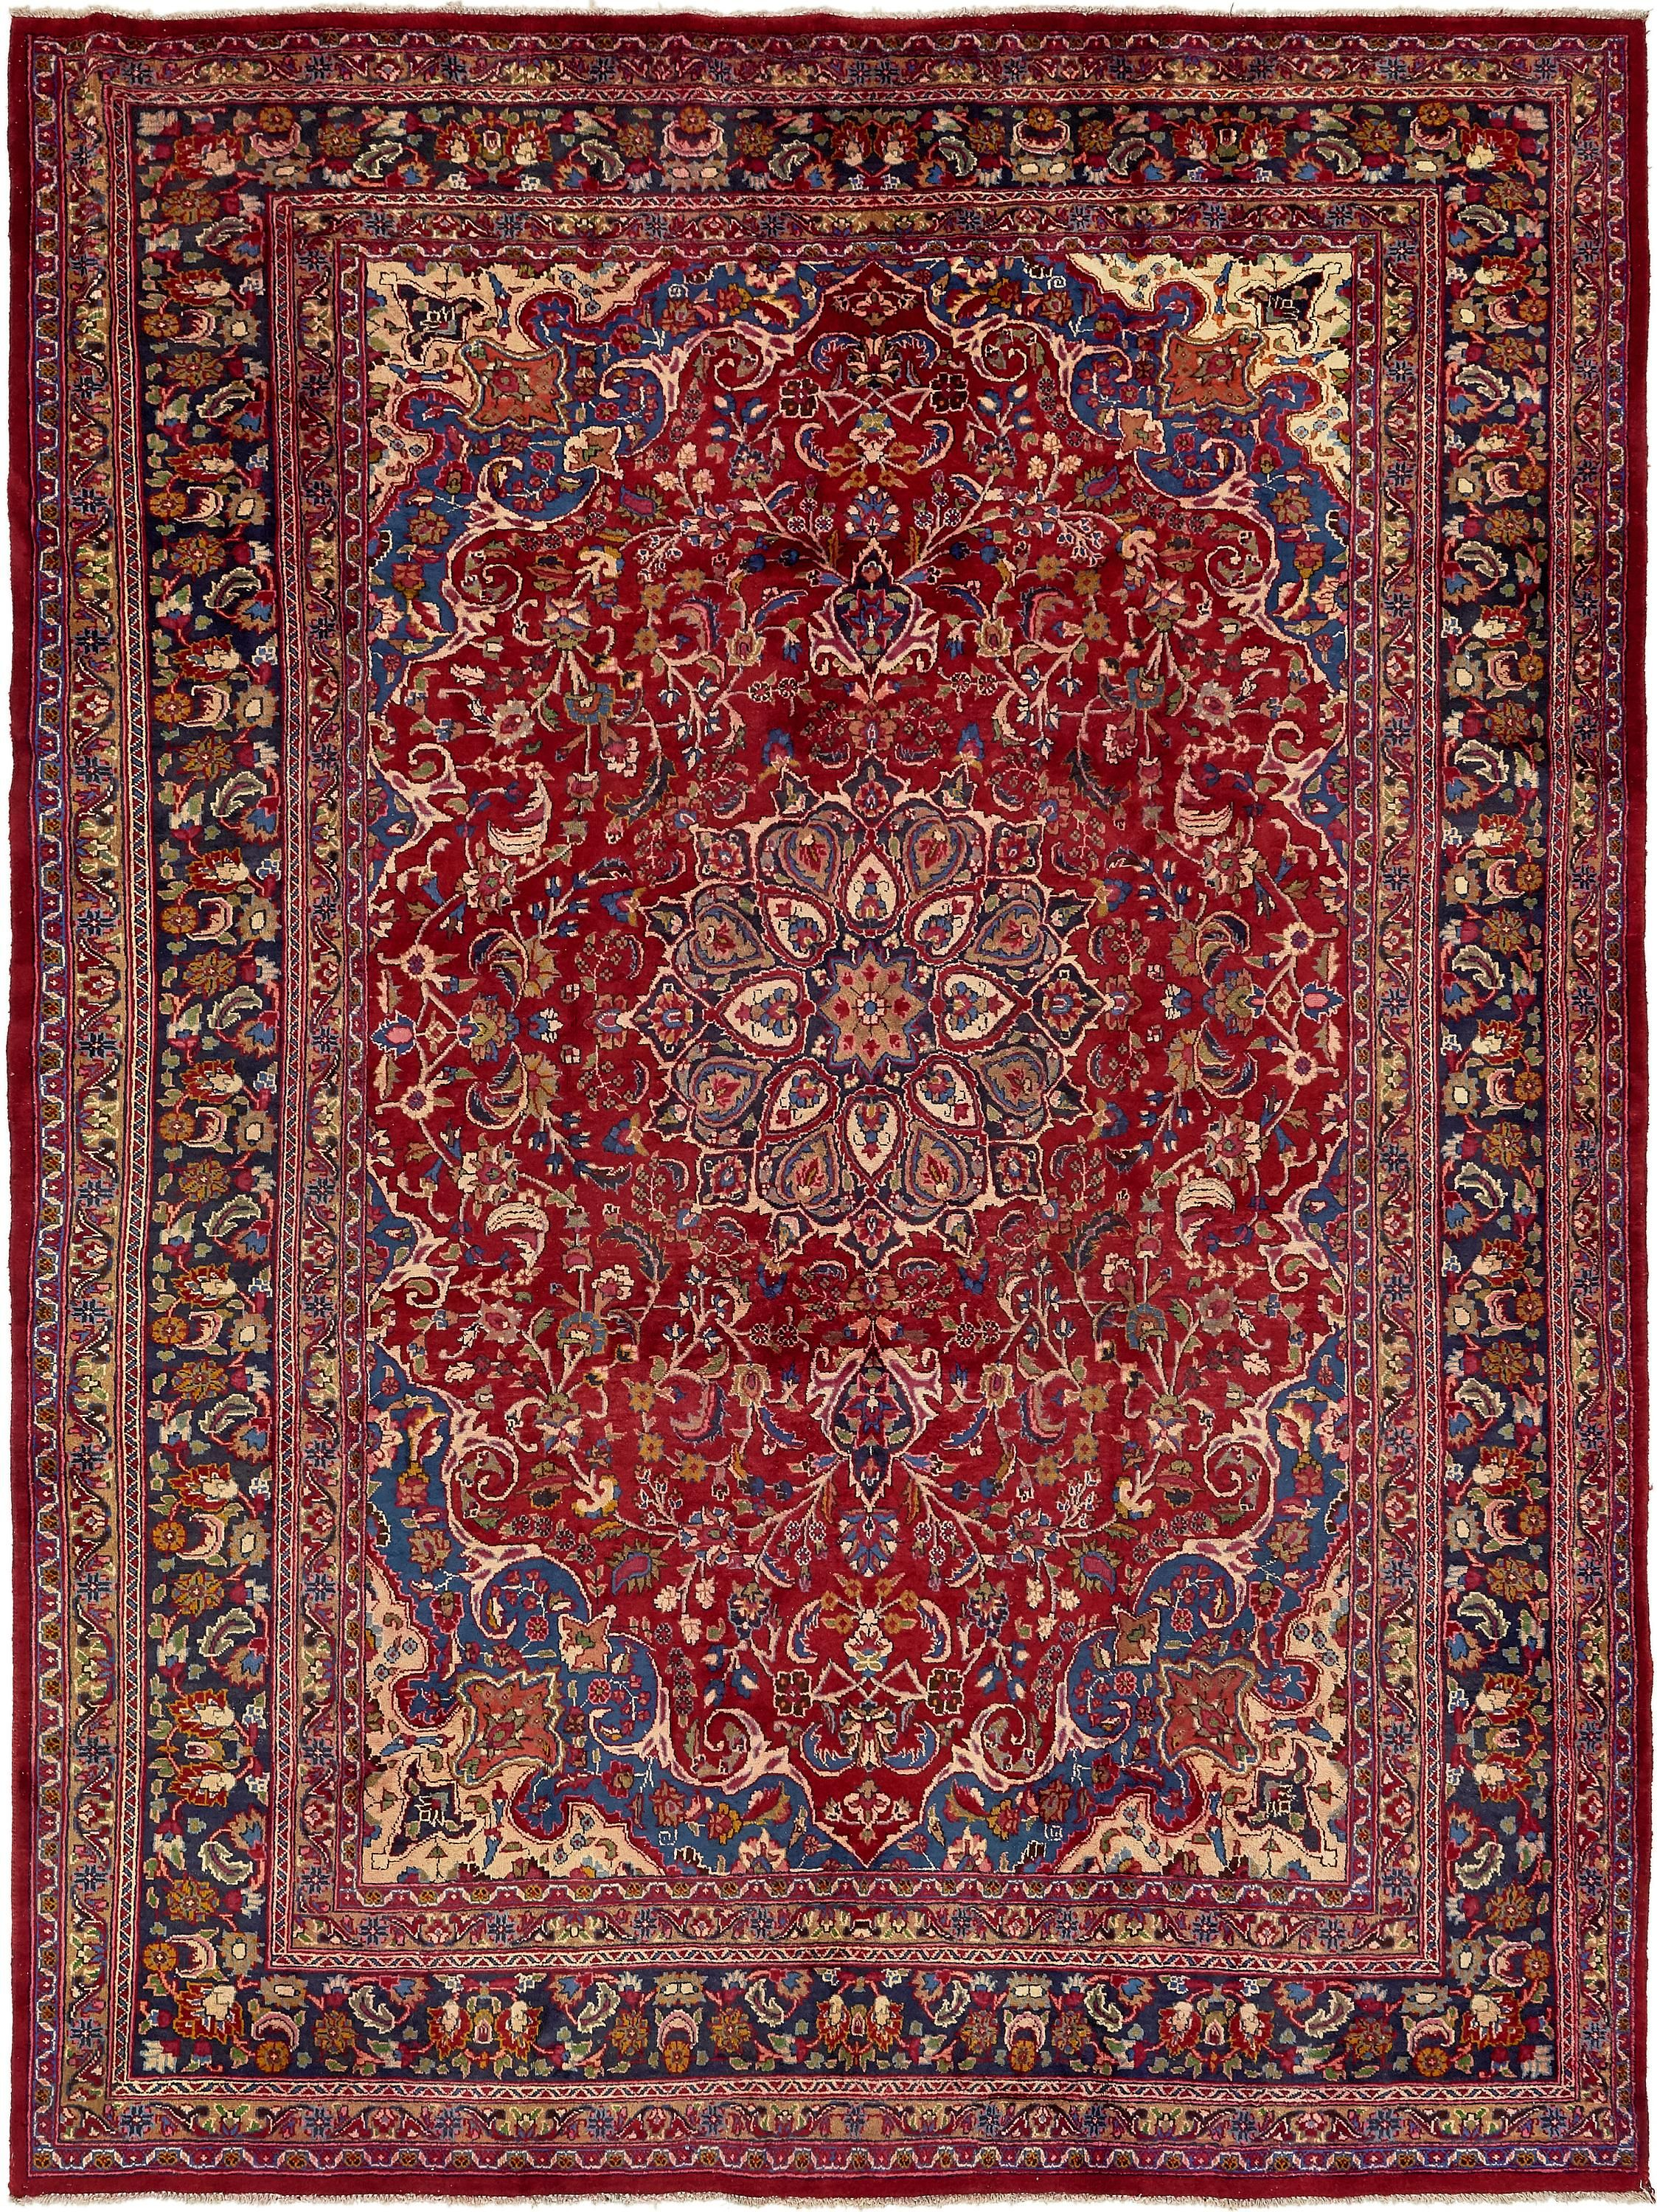 Red 9 10 X 13 Mashad Persian Rug Rugs Com Persian Rug Rugs Large Area Rugs